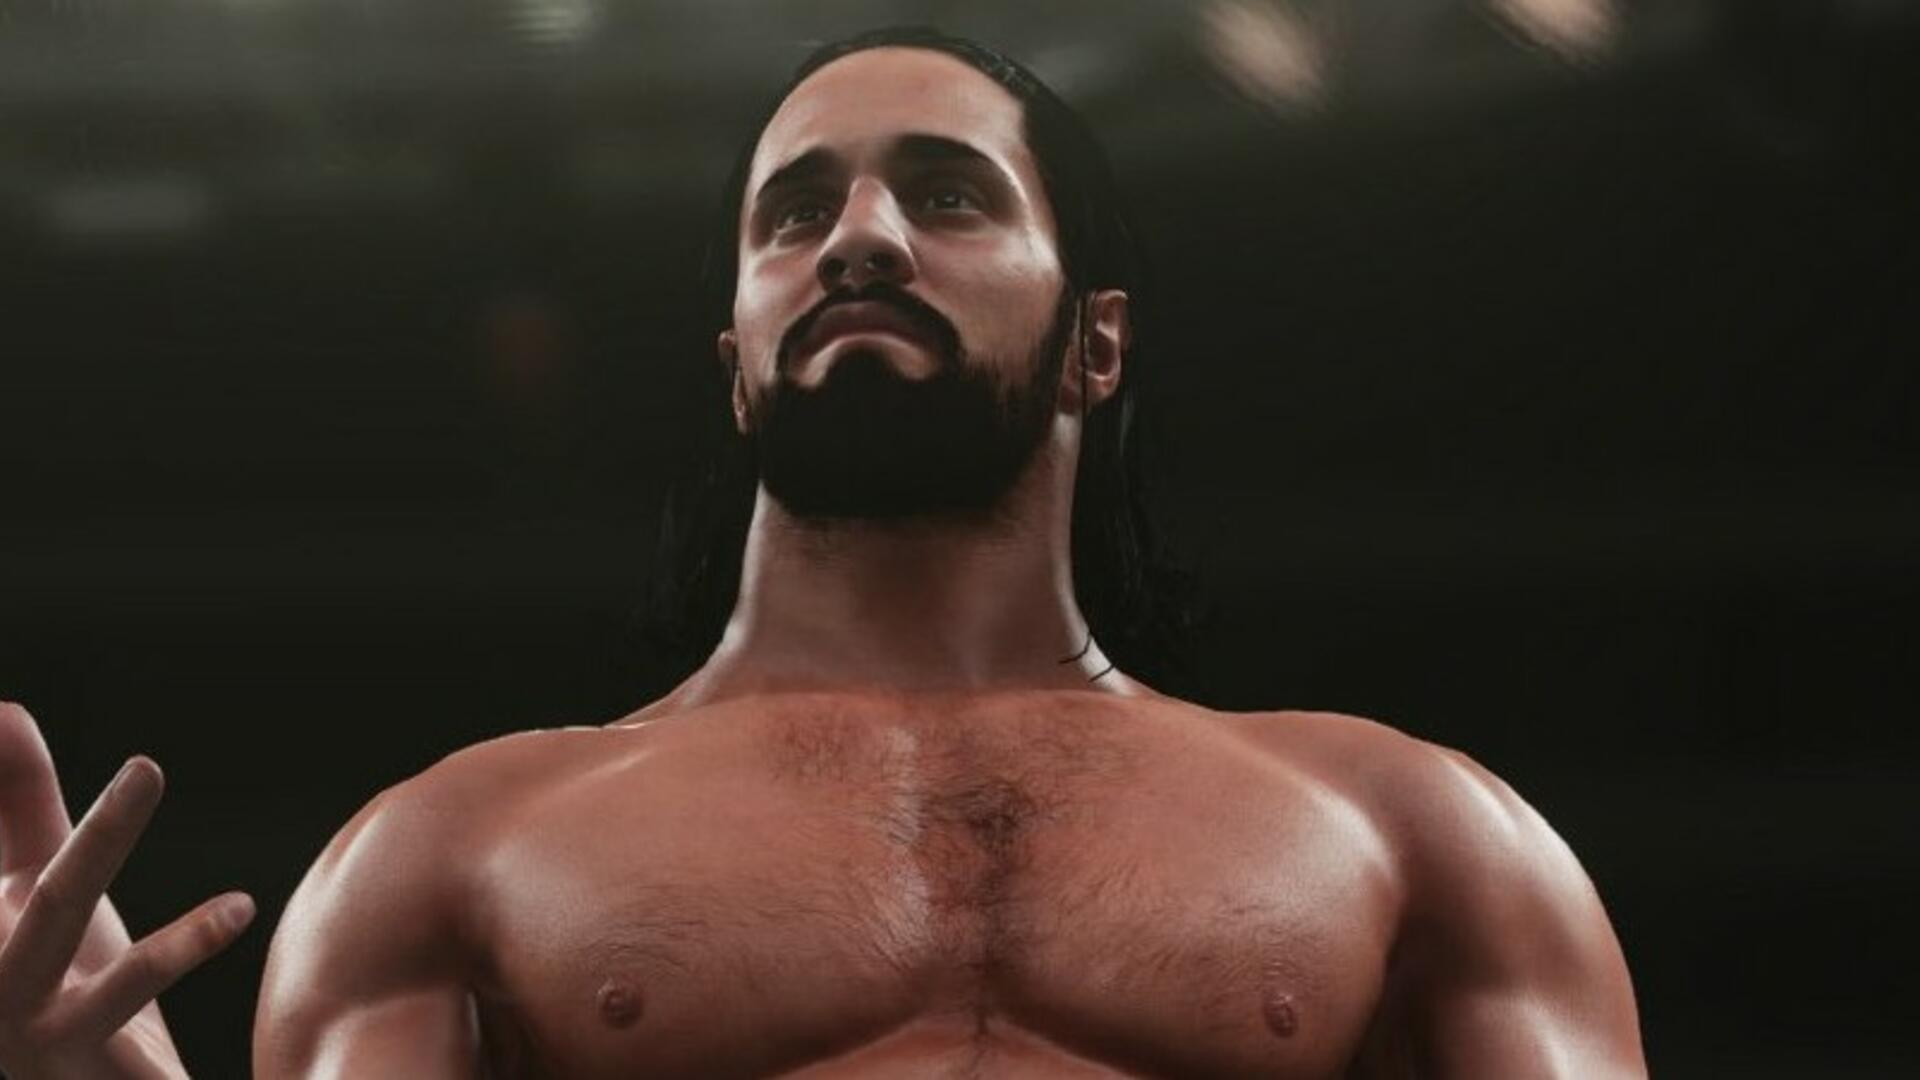 WWE 2K18 Guide - Tips and Tricks to Become the Ultimate Superstar - Match Types, Arenas